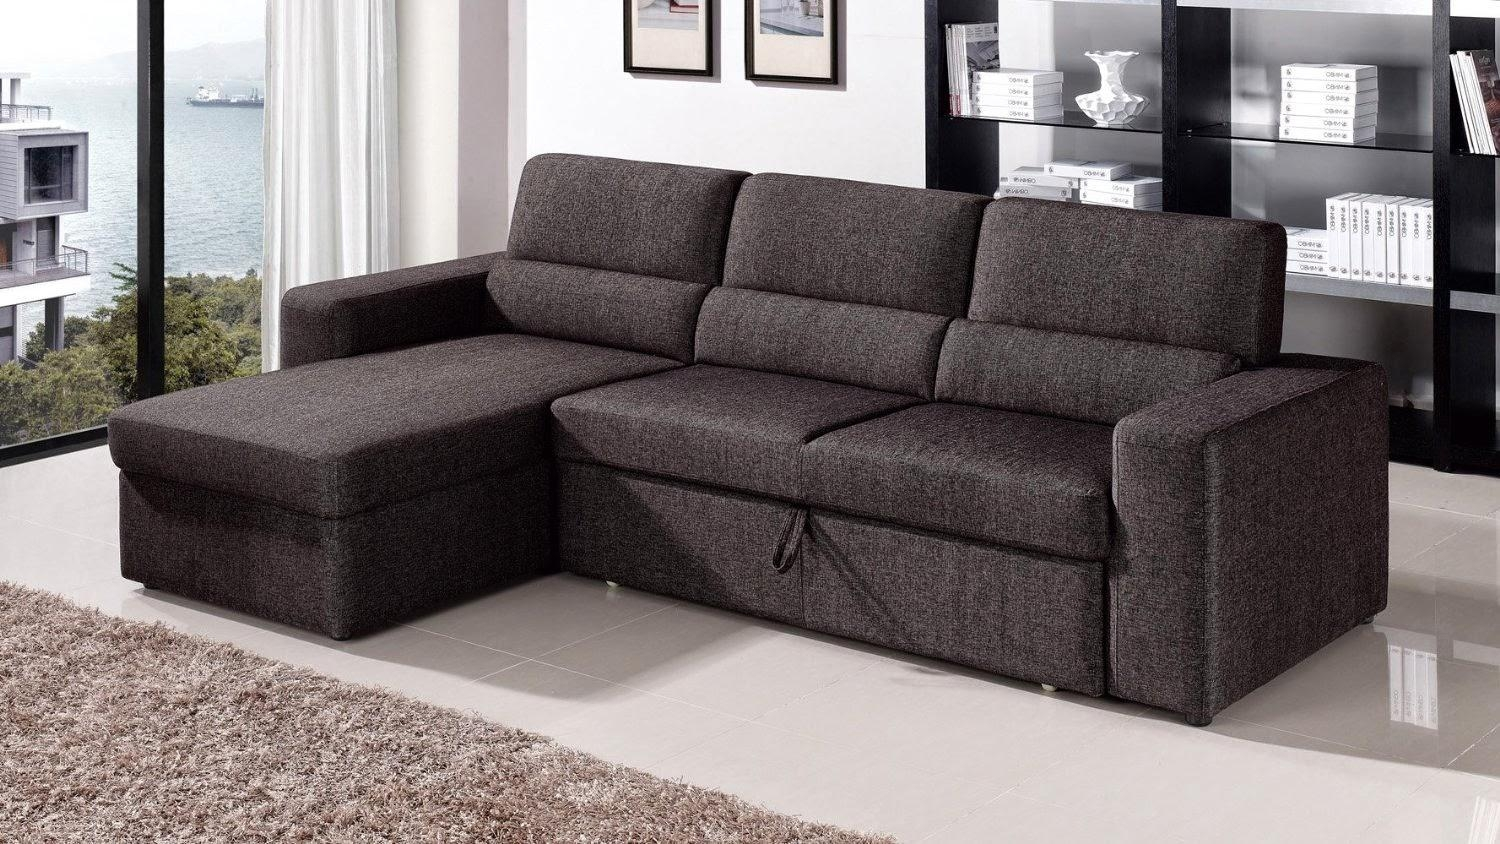 Elegant Sectional Sofa With Pull Out Sleeper 60 In Sofa Sleeper In Sleeper Sofas San Diego (View 11 of 20)